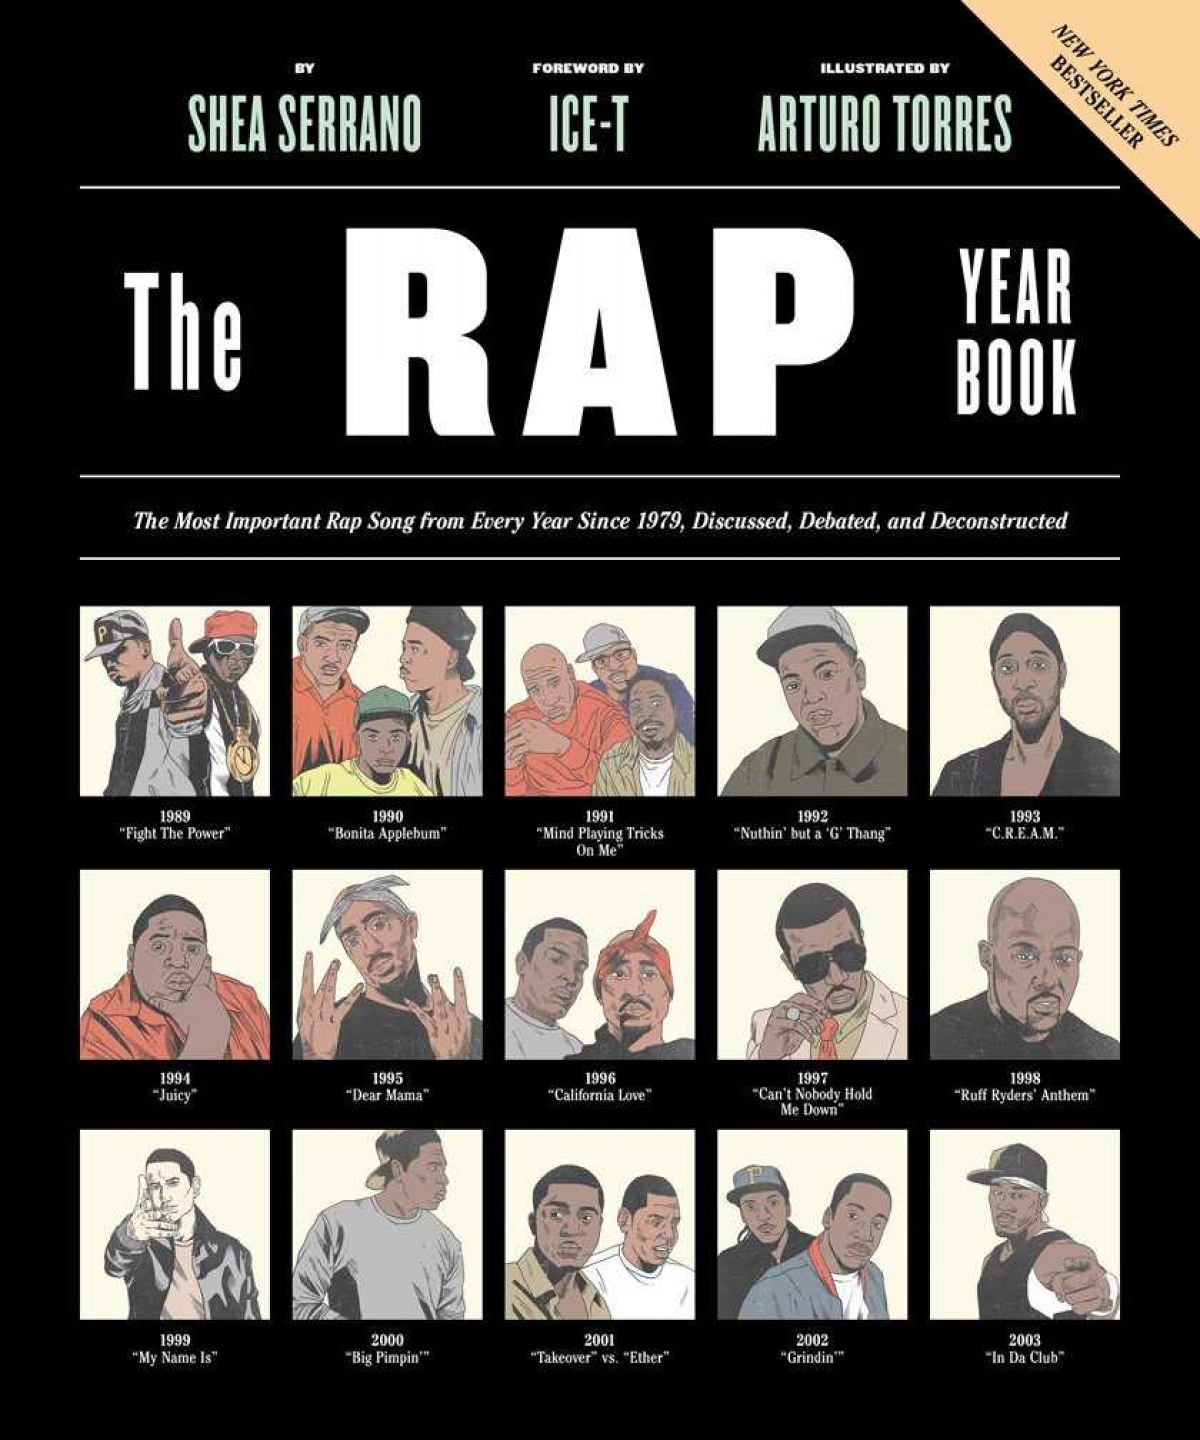 Rap yearbook, The - The Most Important Rap Song from Every Year S